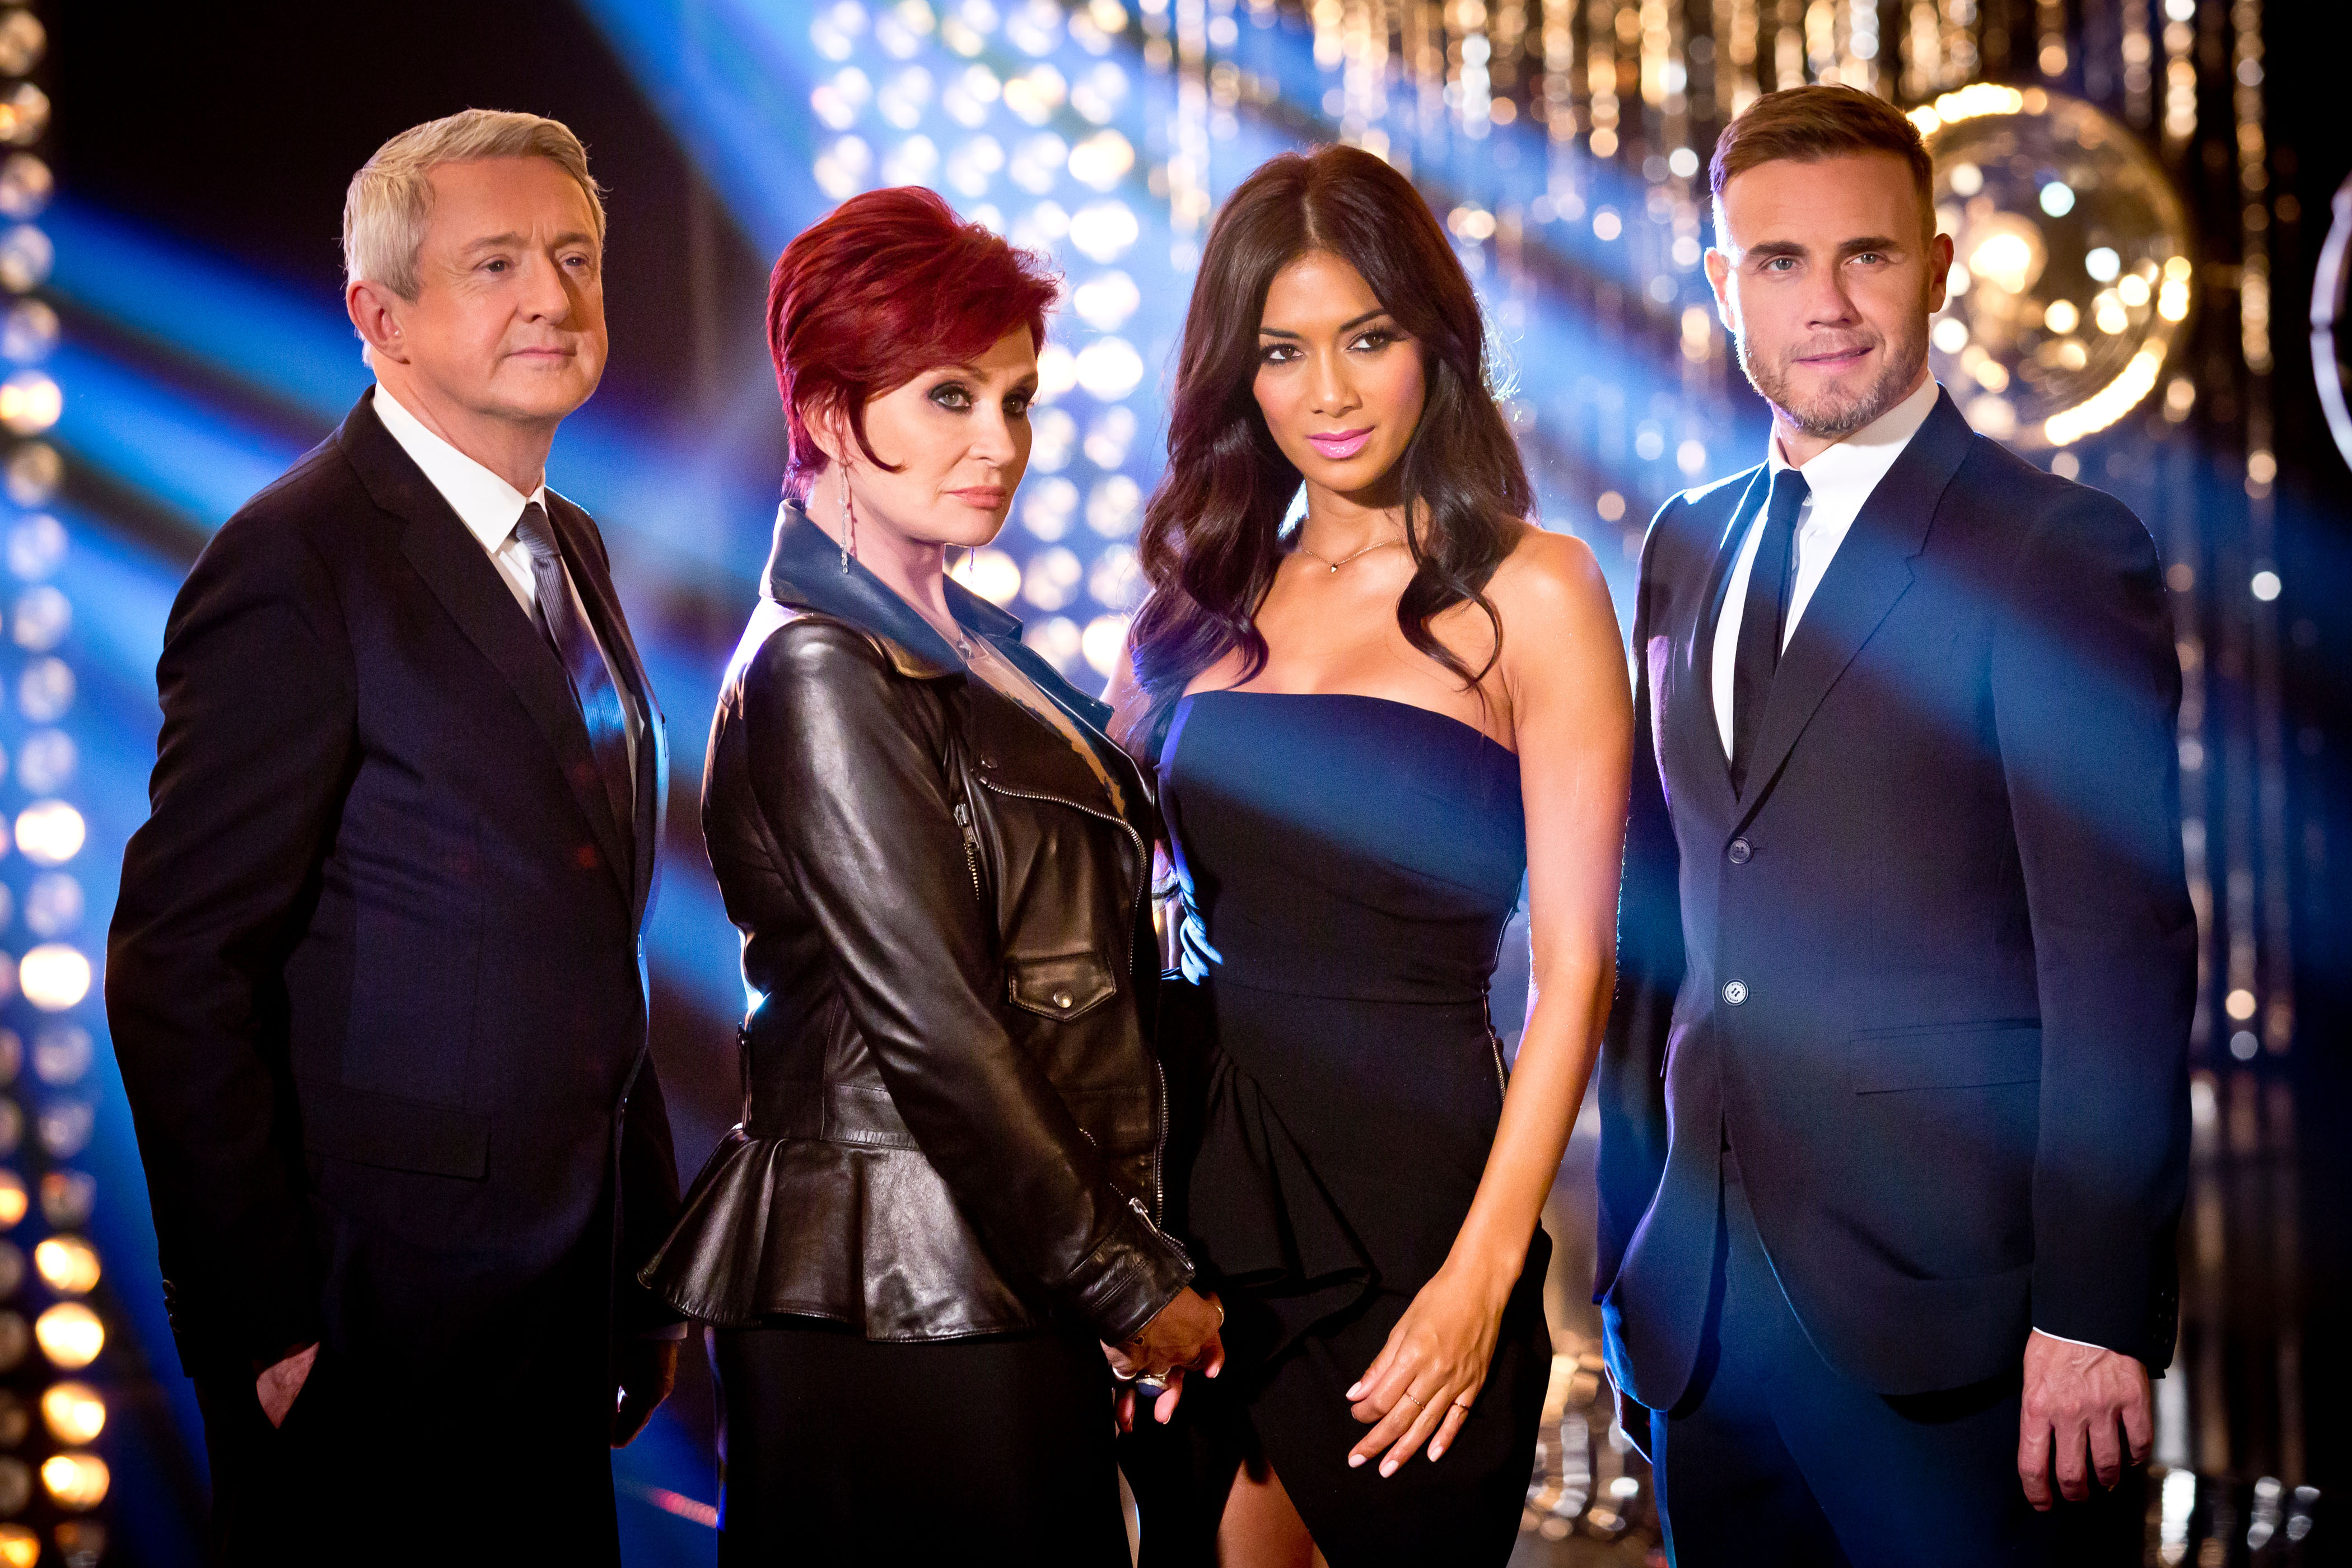 Sharon Osbourne's X Factor return proved popular with fans (Picture: ITV)